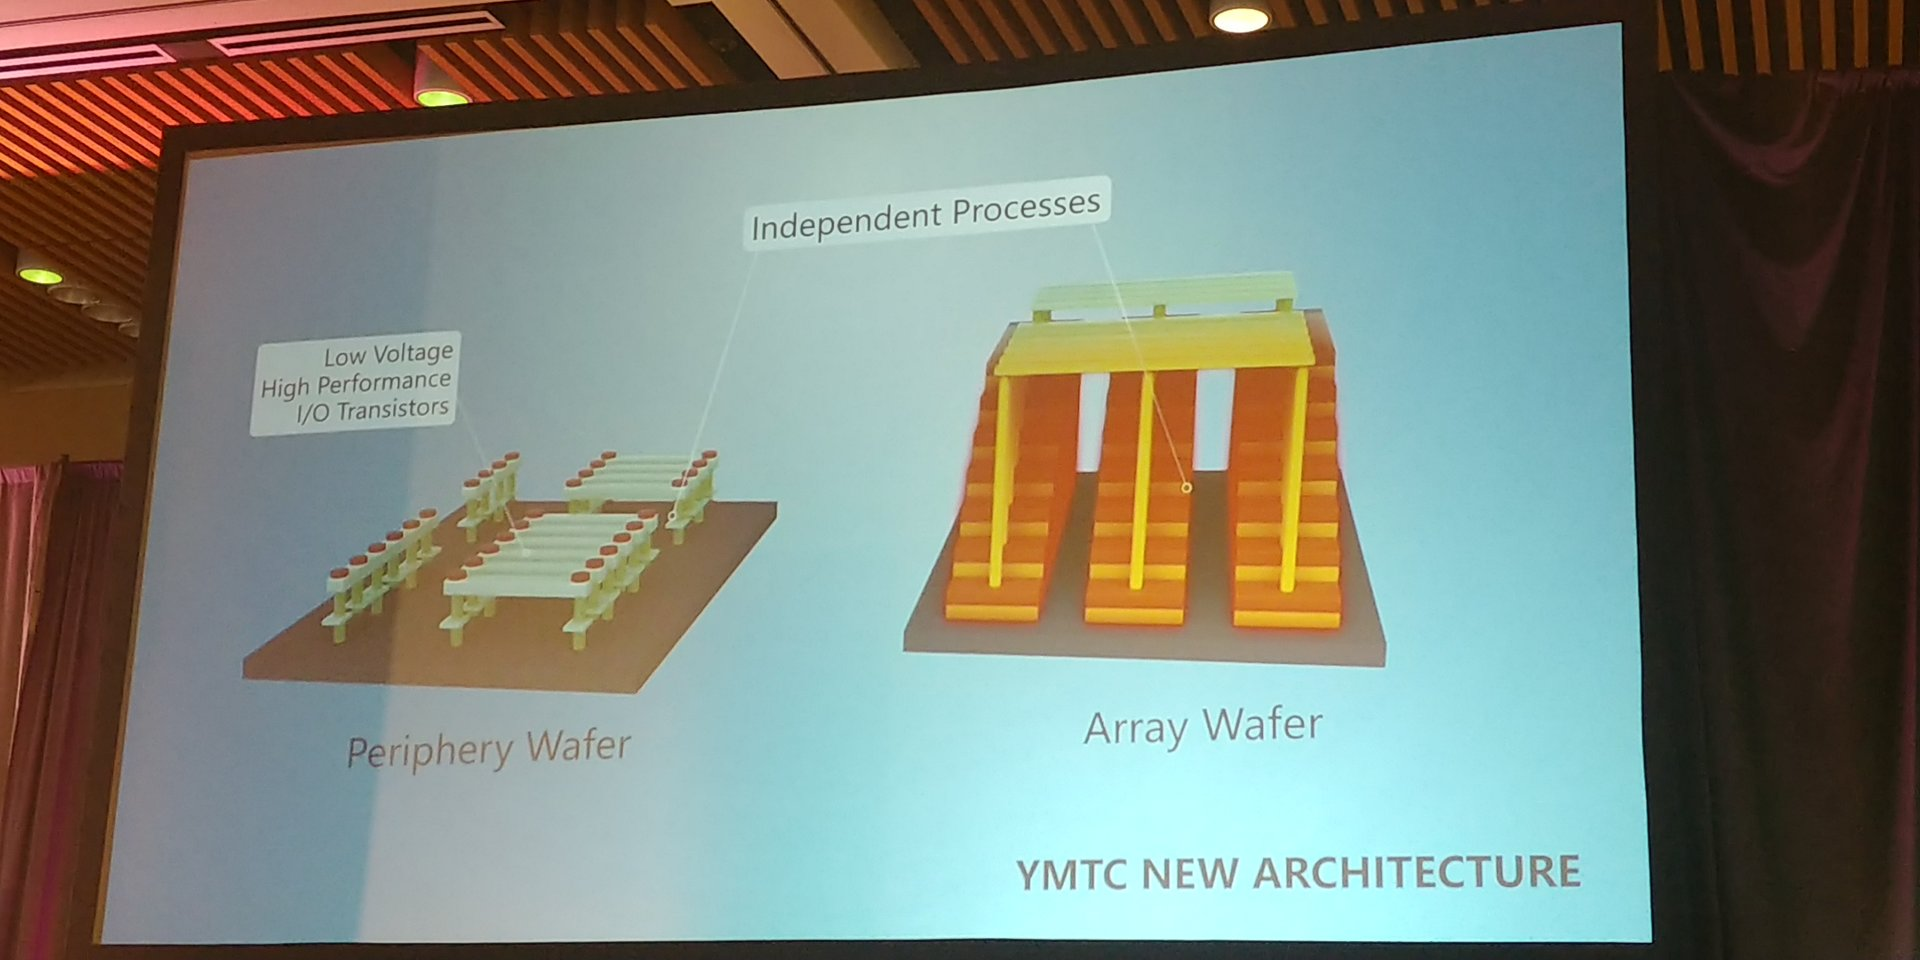 Xtacking: I/O und Flash Array auf separaten Wafern